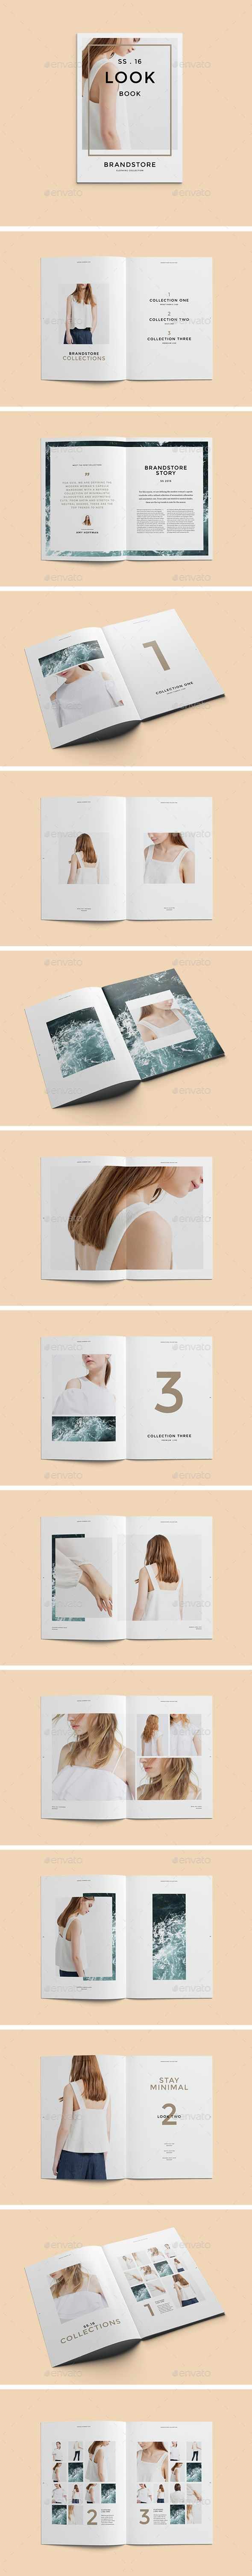 Fashion Lookbook - Magazines Print Templates